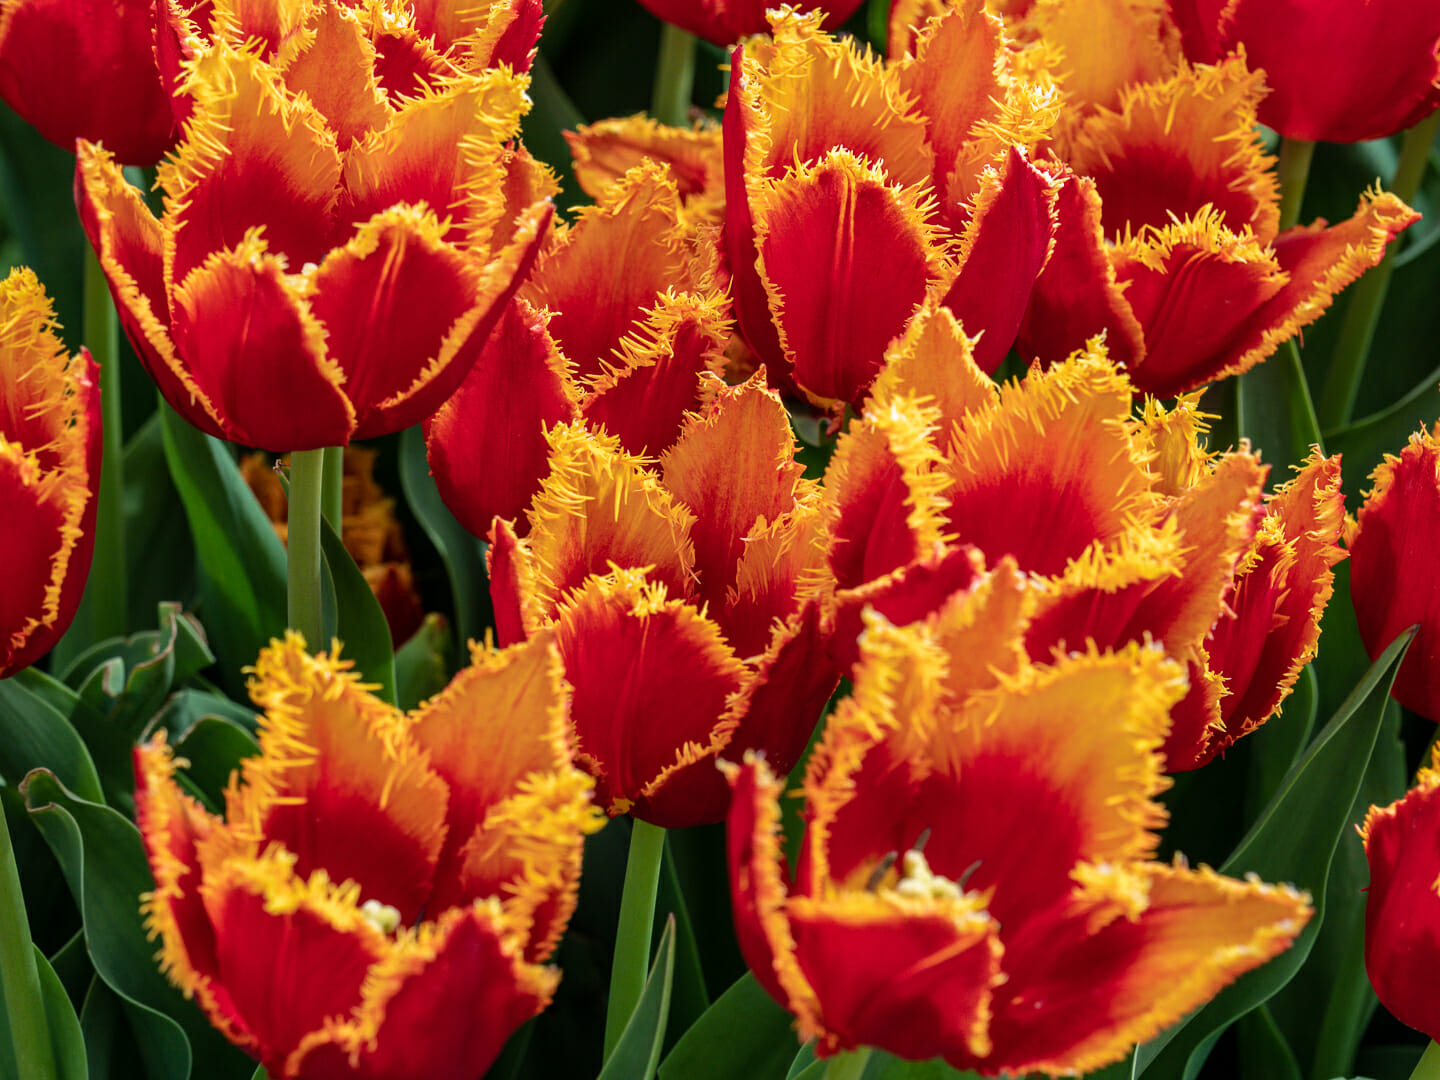 tulips-festible-4210090